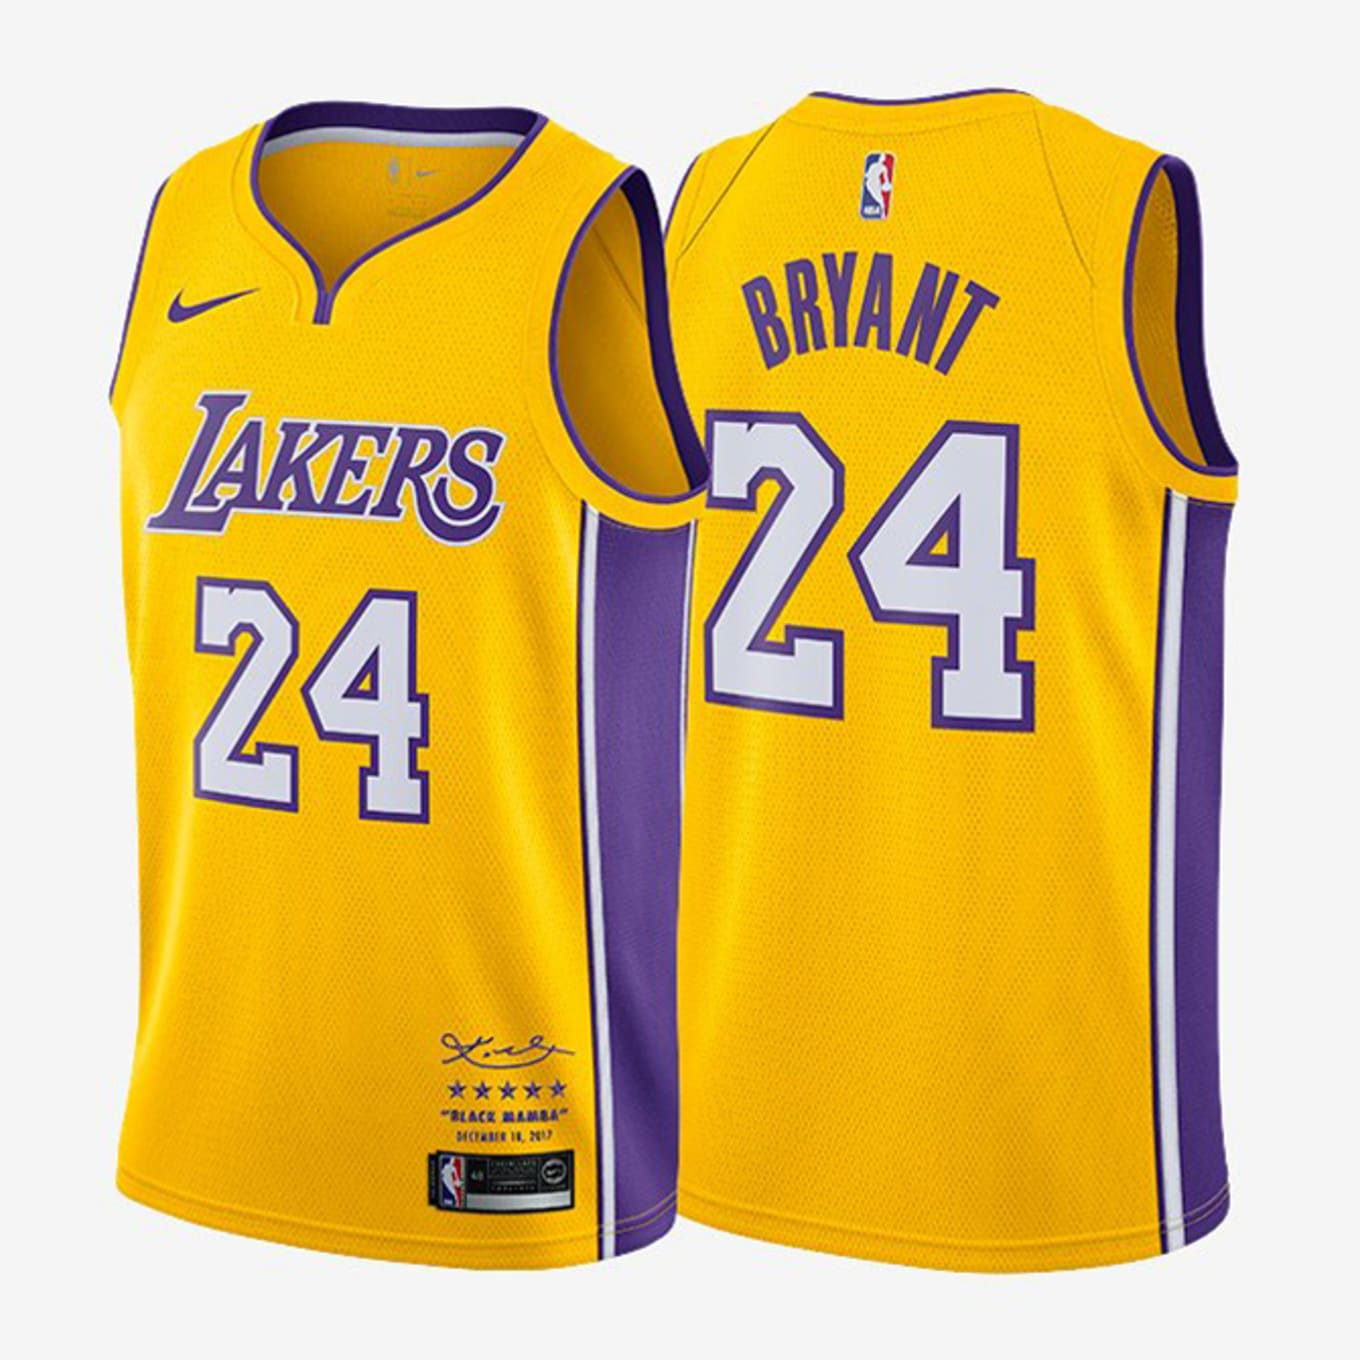 new arrivals abd75 9f5bf Nike to Release Kobe Bryant Retirement Jerseys